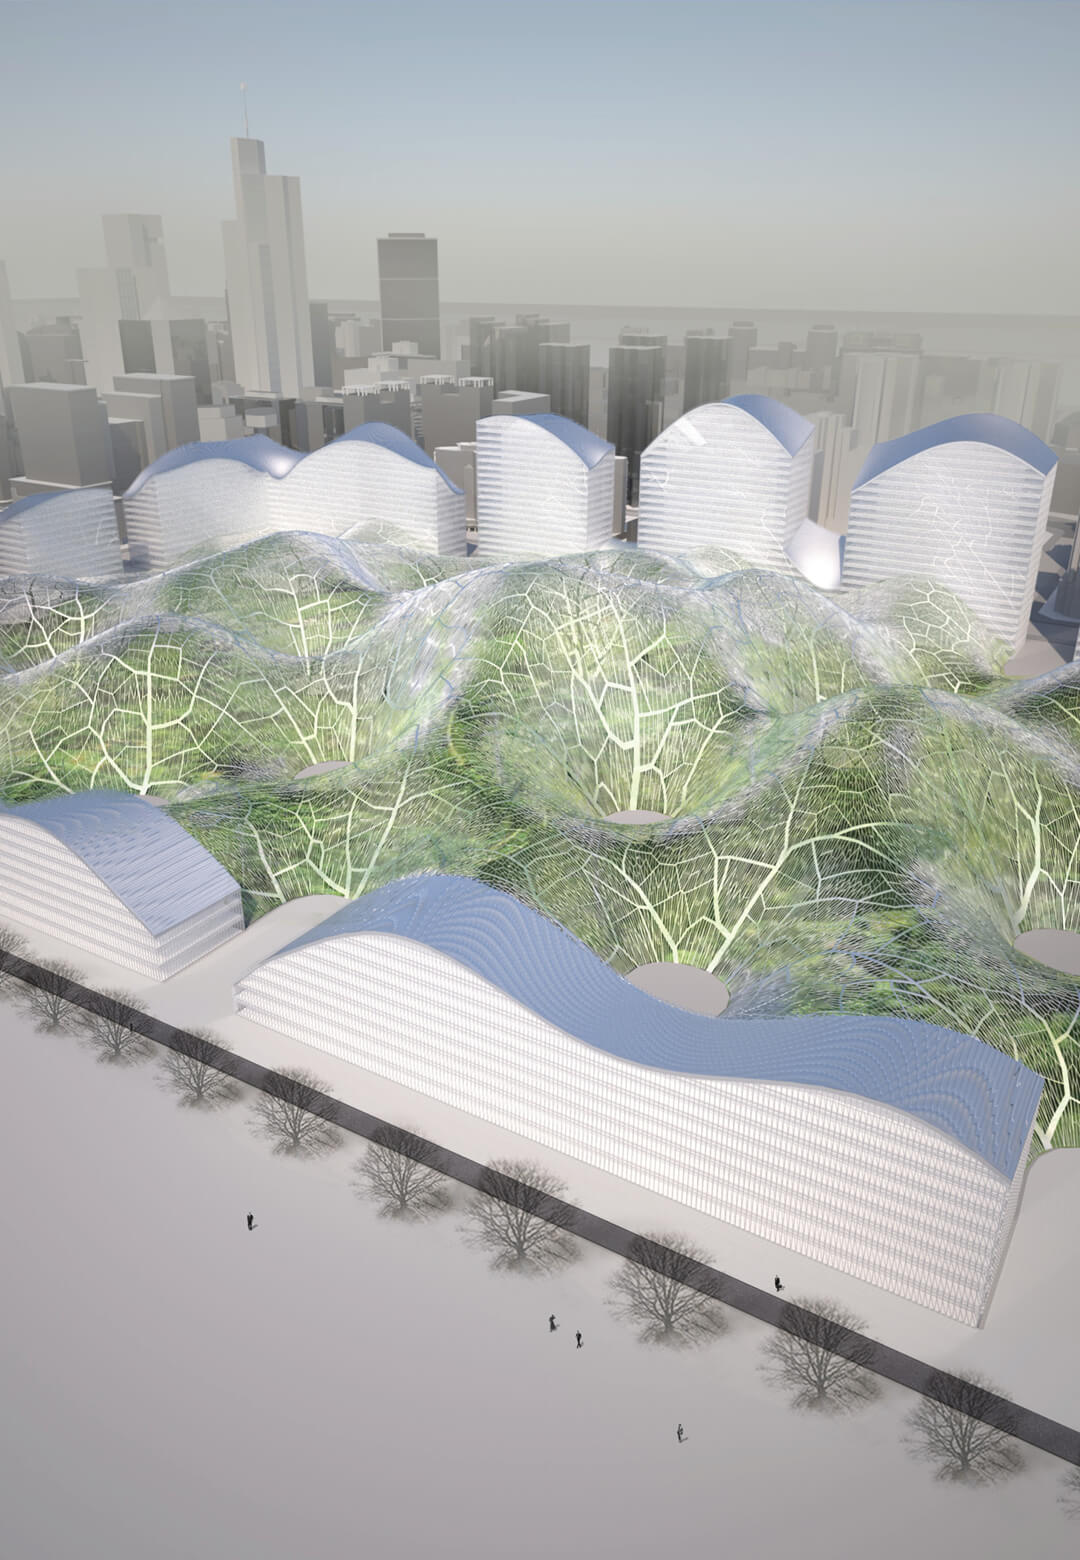 The Bubbles Project proposes the construction of enclosed parks that house botanical gardens with clean air | Bubbles Project| Orproject | STIRworld